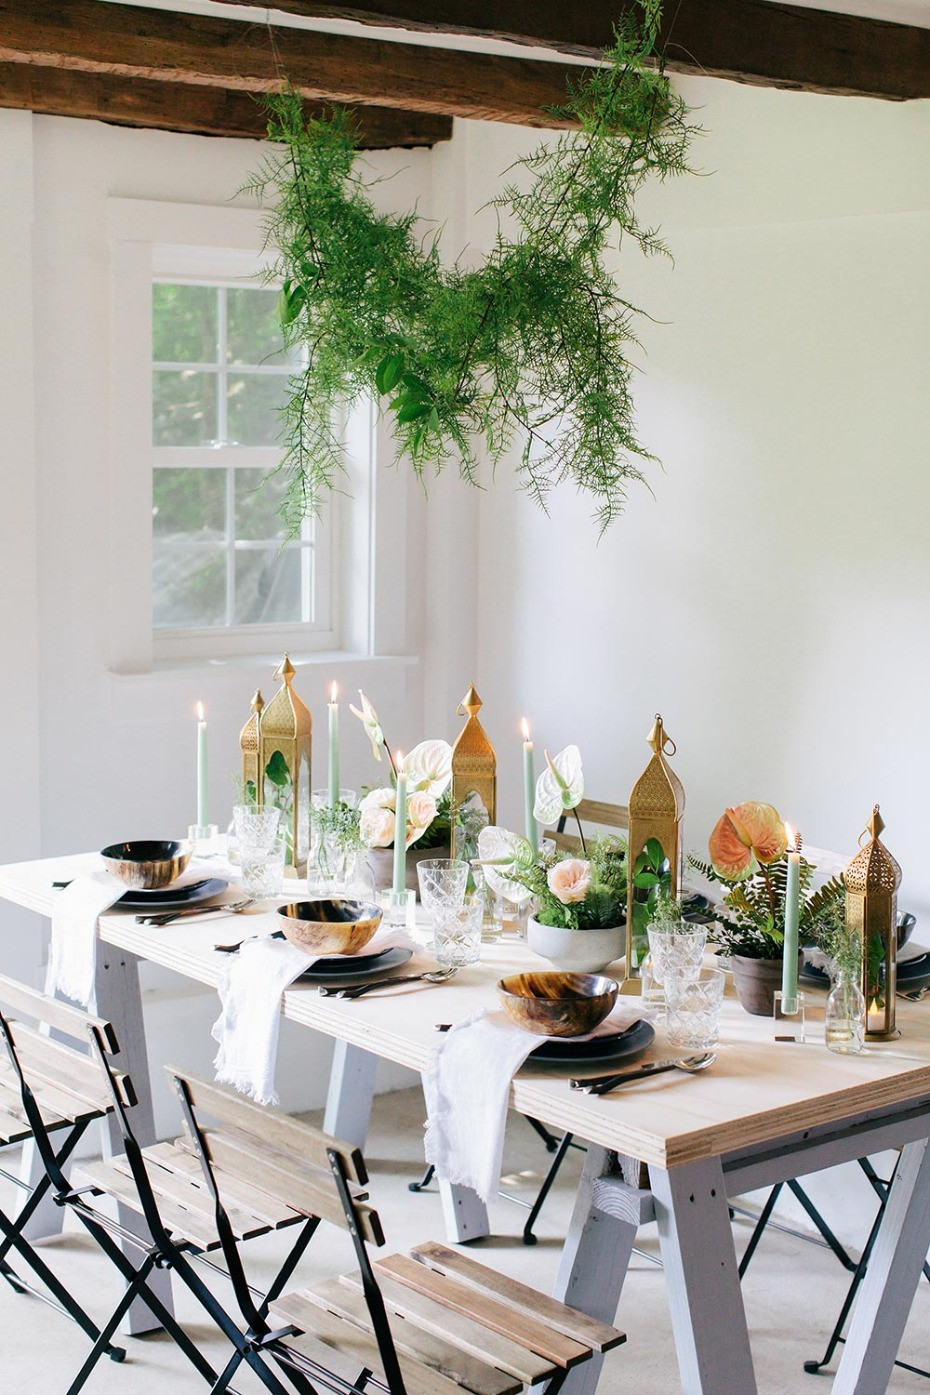 Wedding Table Decorations  Unique Wedding Table Decorations That You Can Totally DIY